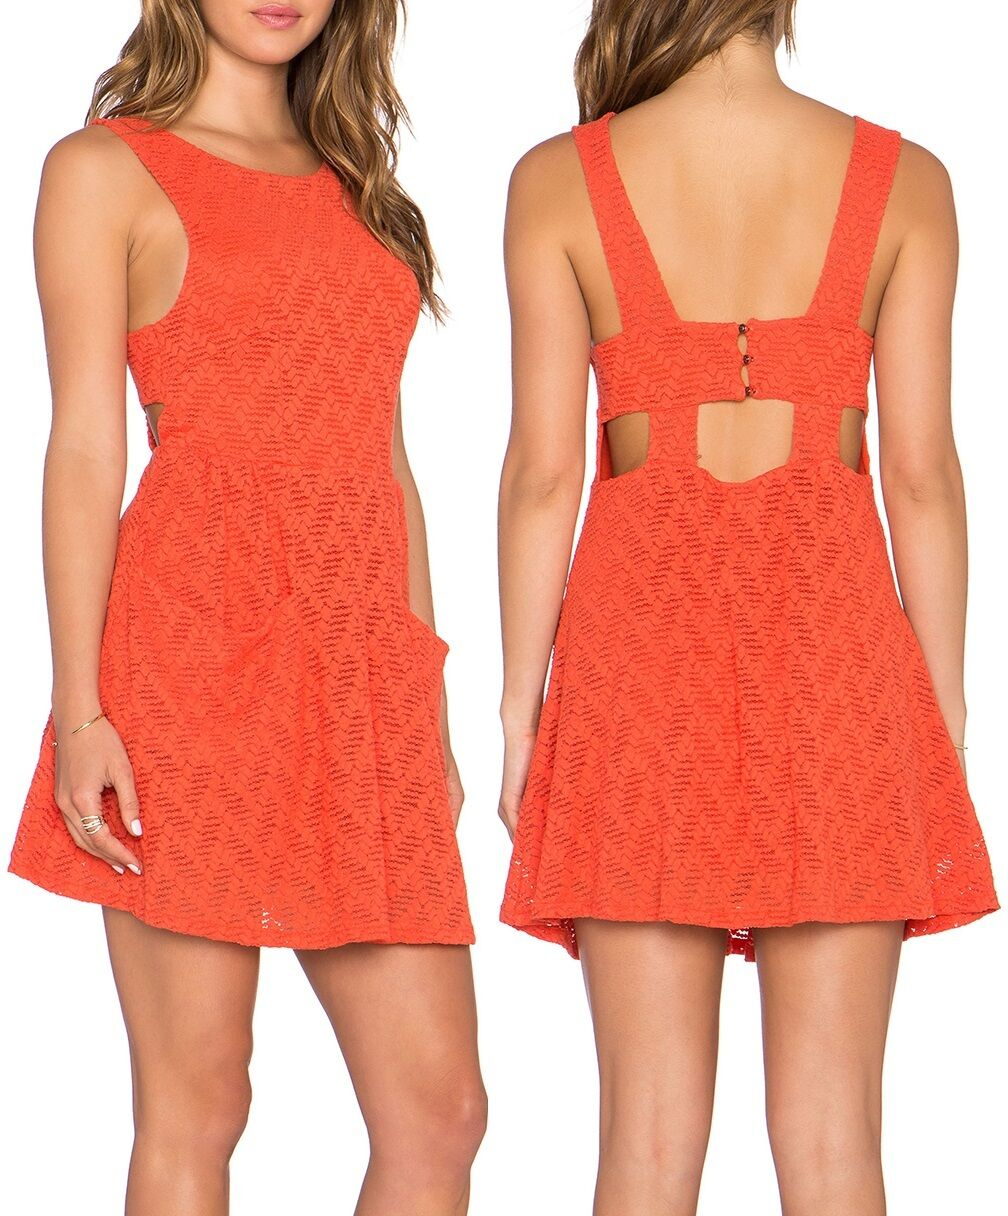 Free People Persimmon Orange Poppy Stretch Lace Mini Dress w Pockets - MSRP